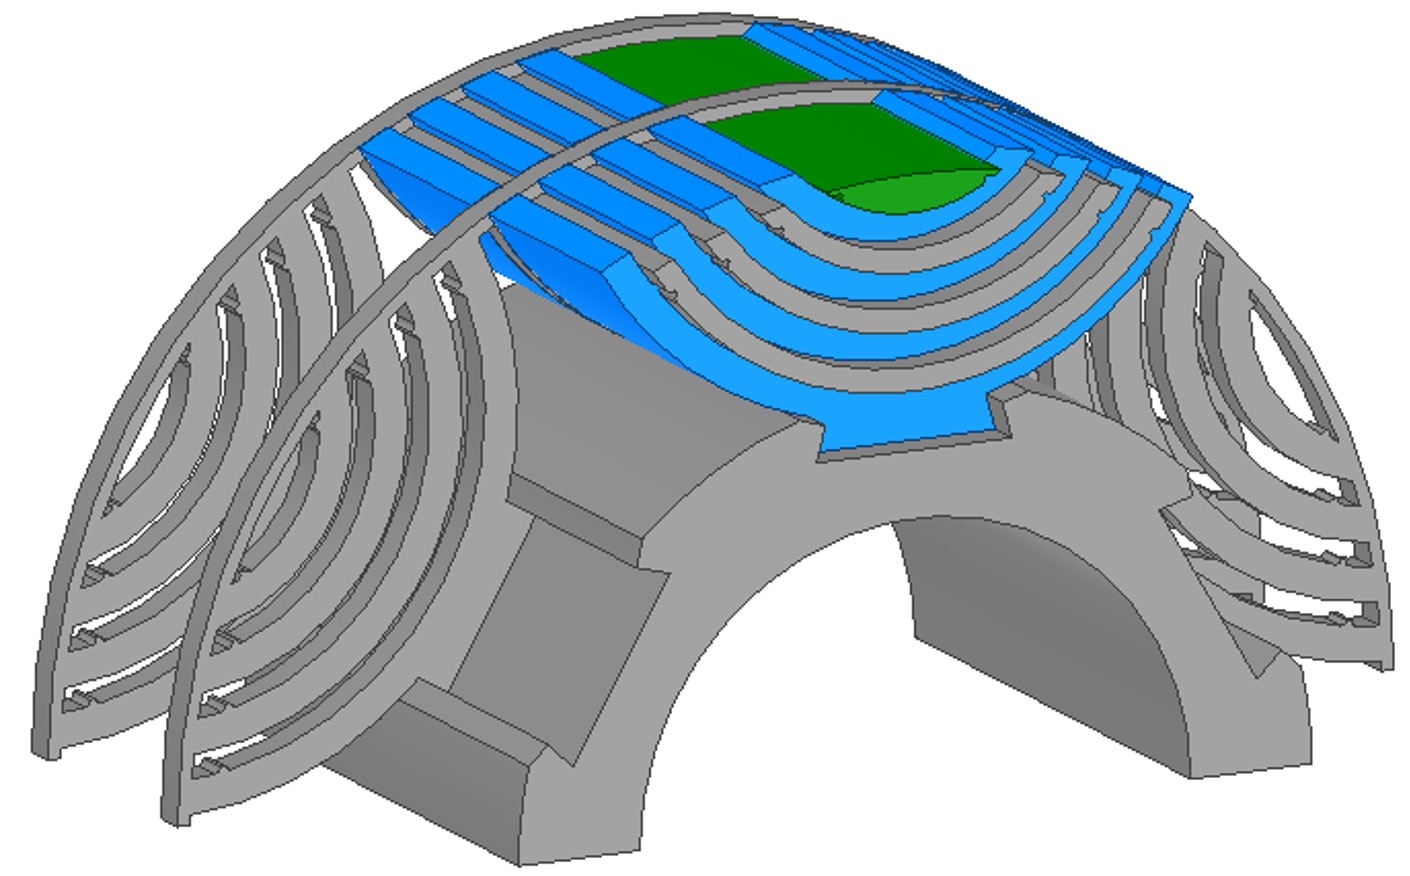 Rotor structural design. Blue pieces are rotor laminations. Grey and green parts are non-magnetic light strong supporting materials